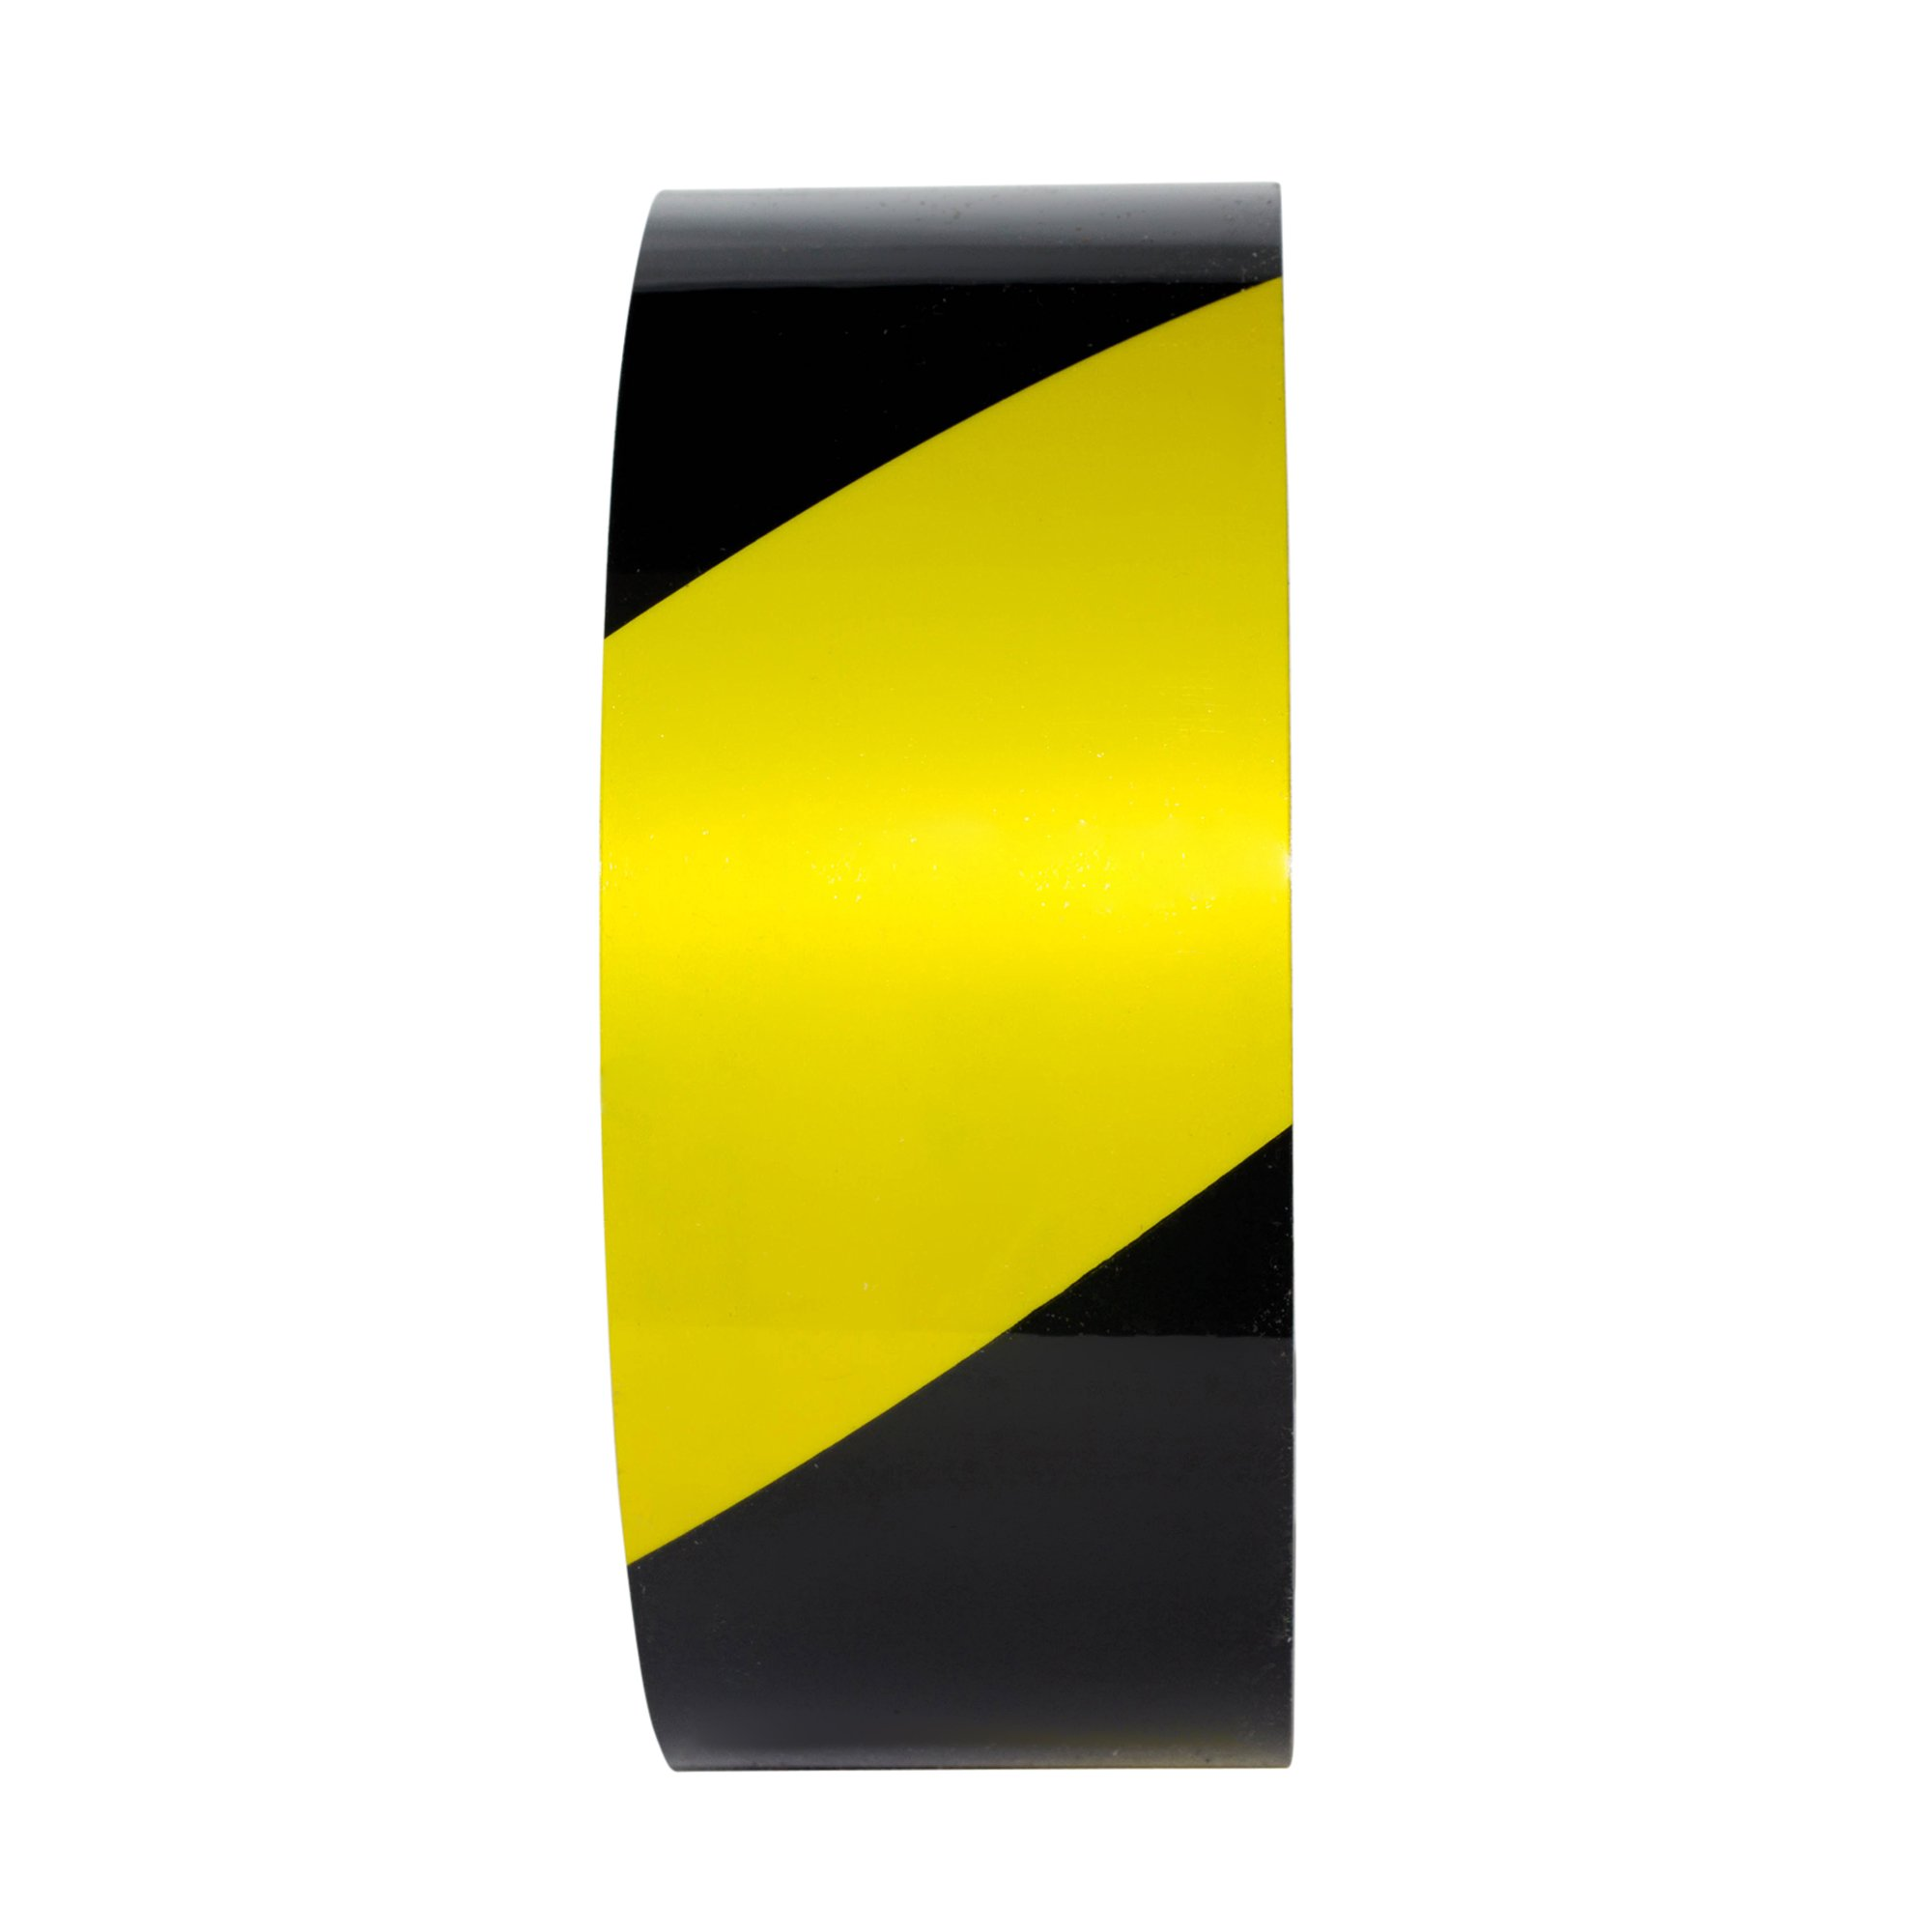 TuffMark Superior Adhesive Floor Marking Tape,Tear Resistant Floor Tape,Floor Safe Marking Tape for Warehouse Workplace Surfaces - Black/Yellow - 4-inch x 100-Foot (1 Roll)